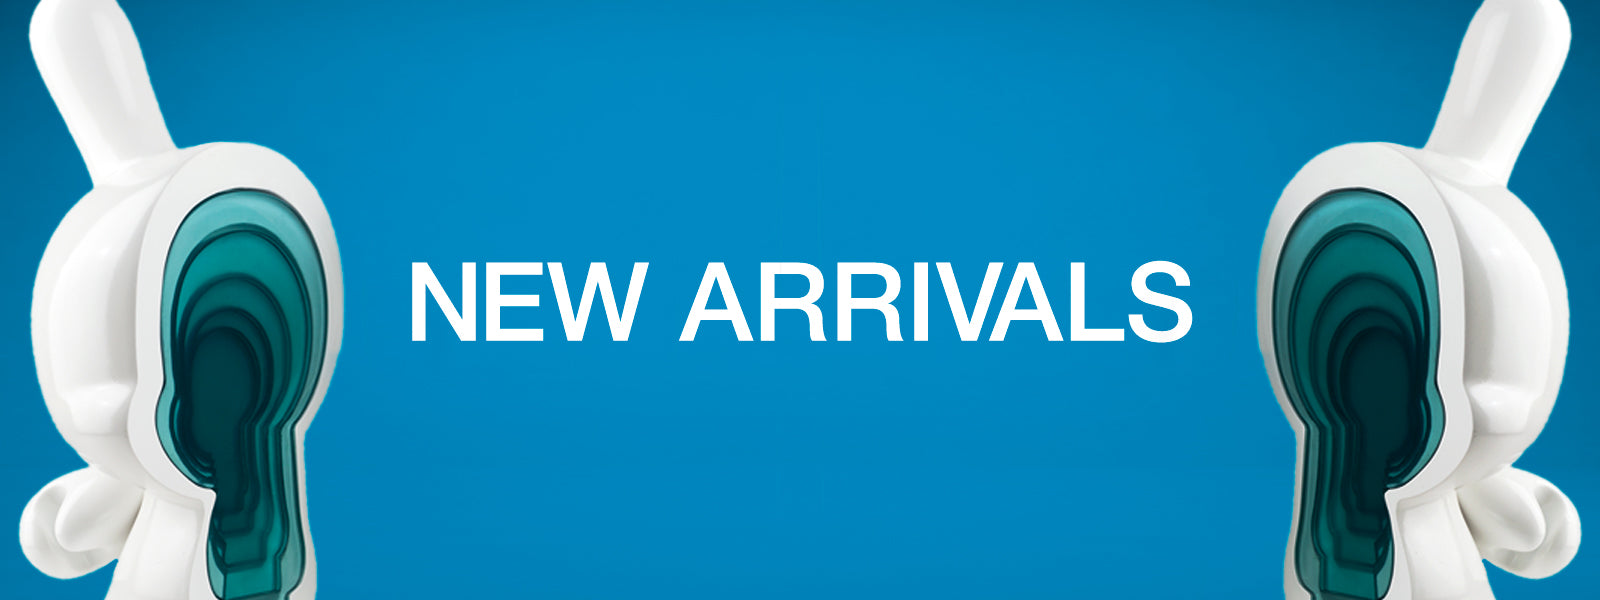 New Art Toys and Arrivals by Kidrobot